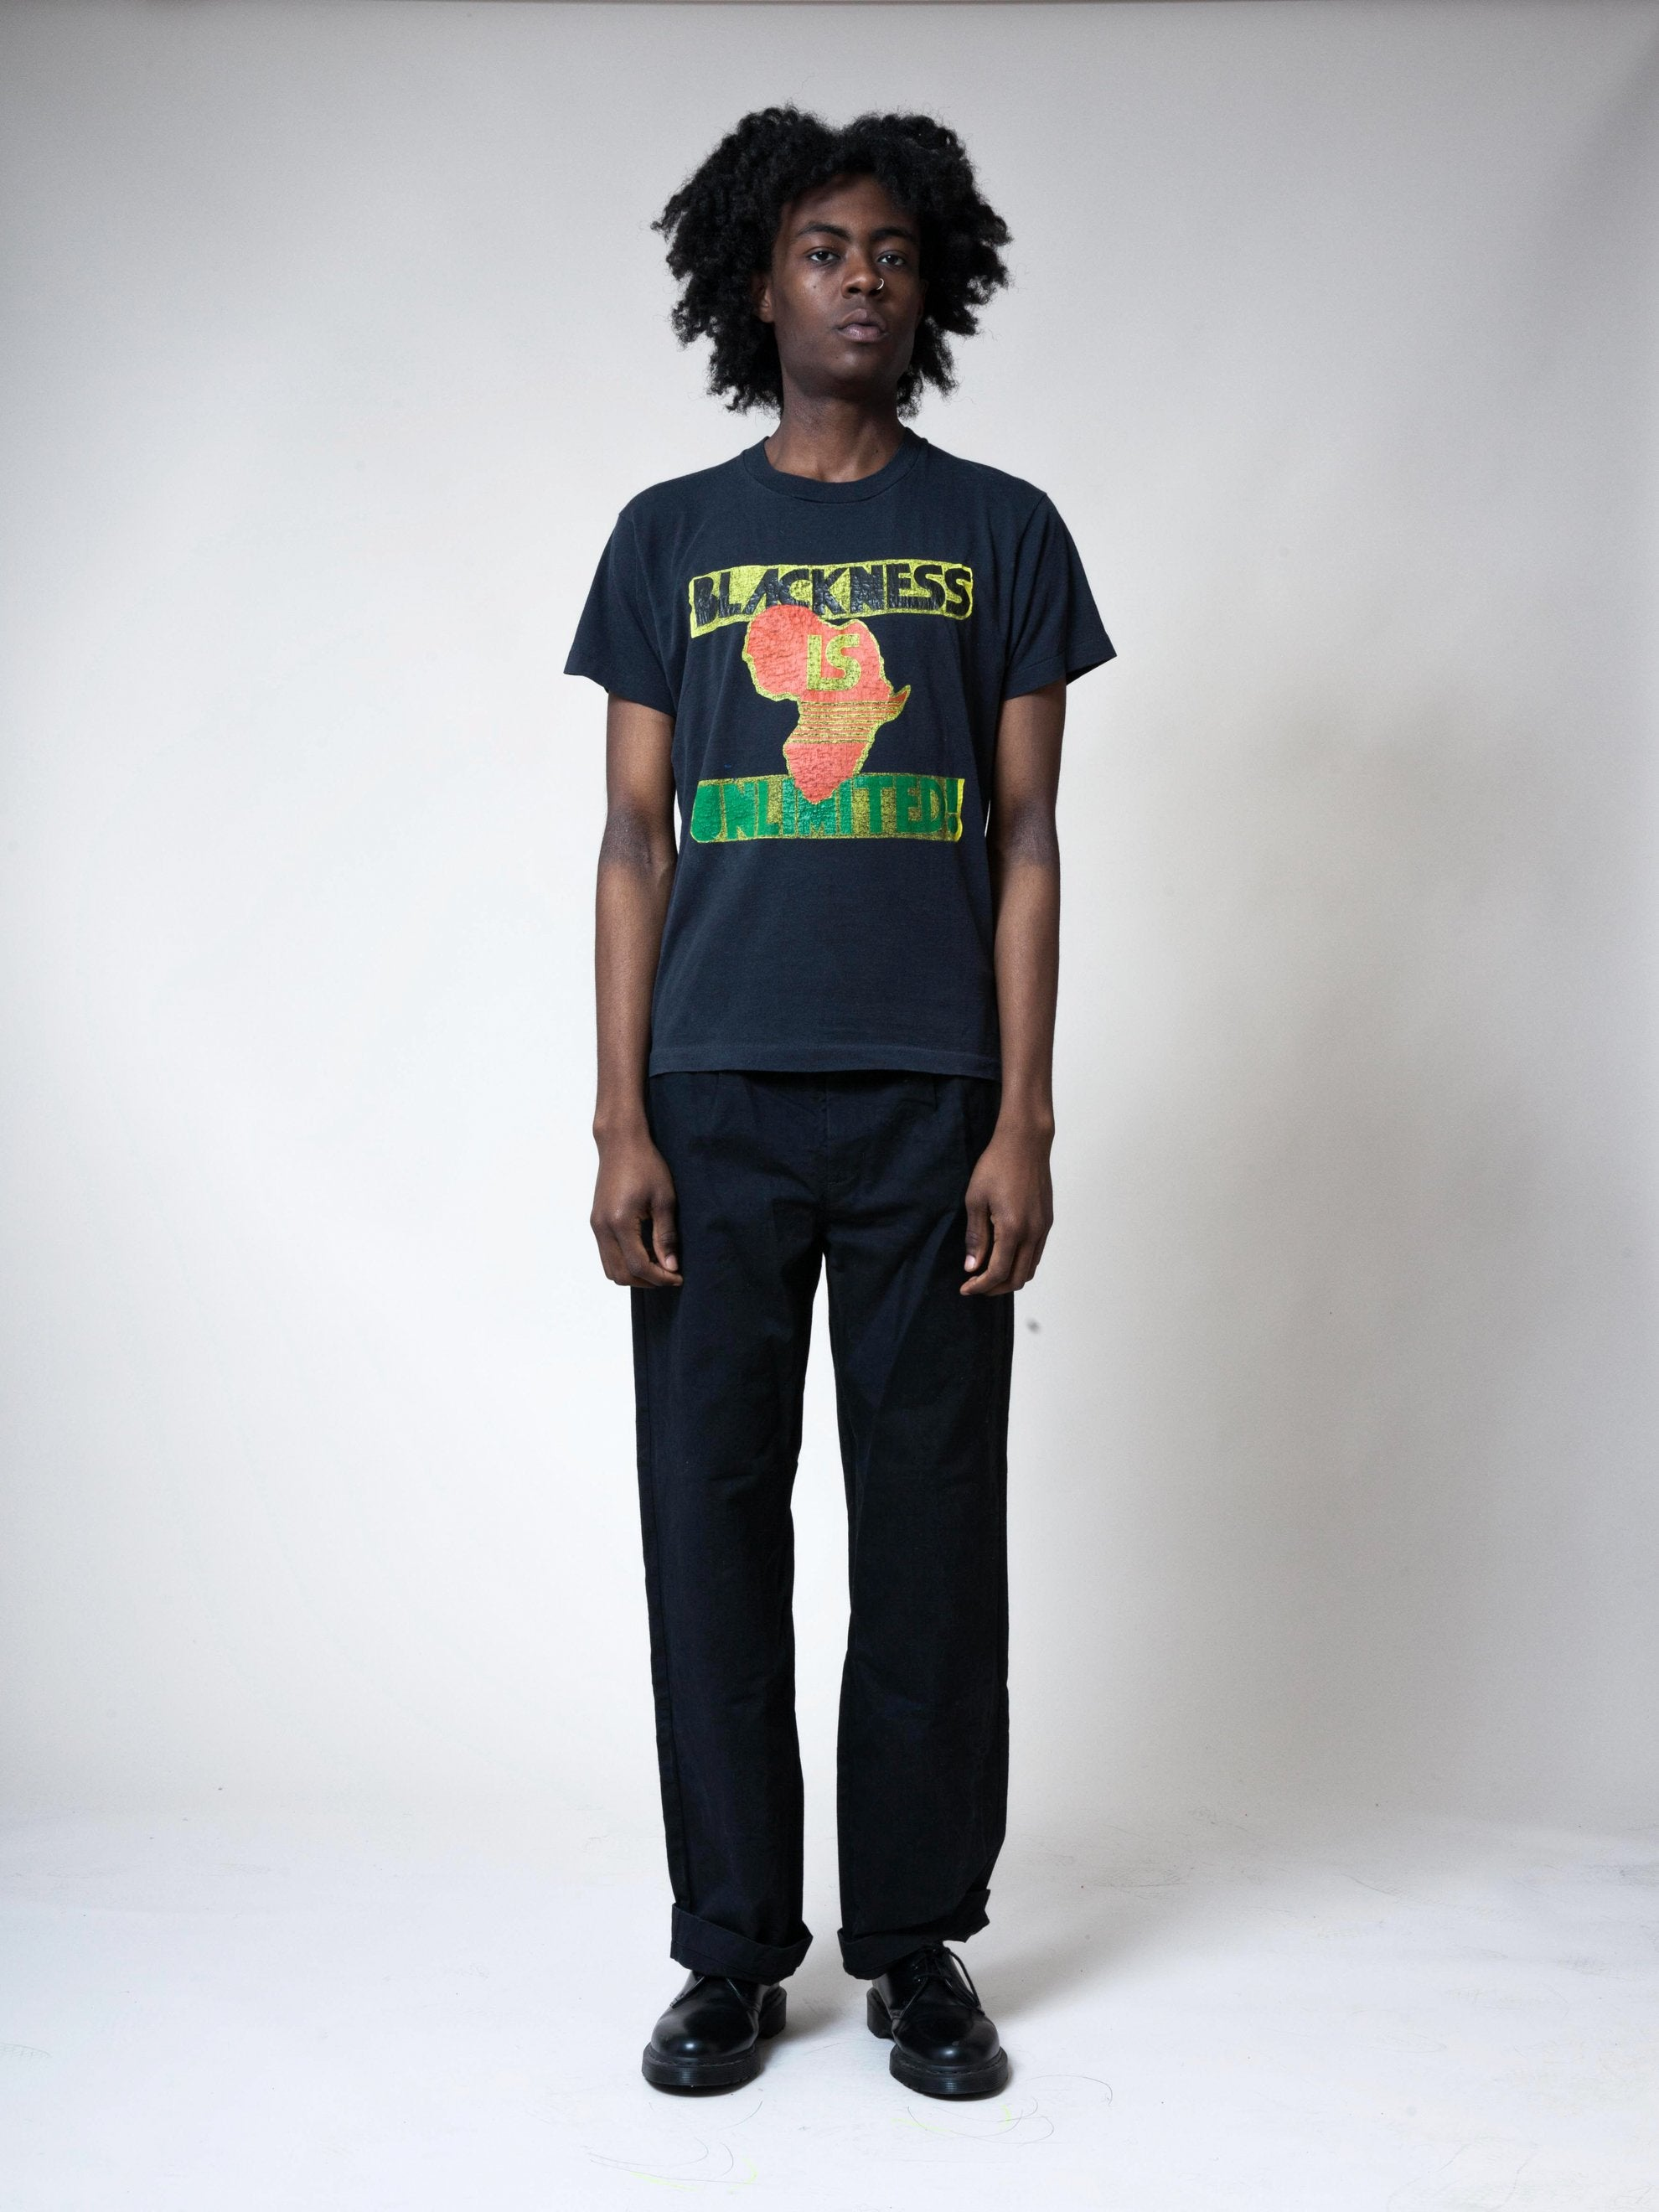 1980's Blackness is Unlimited! T-Shirt